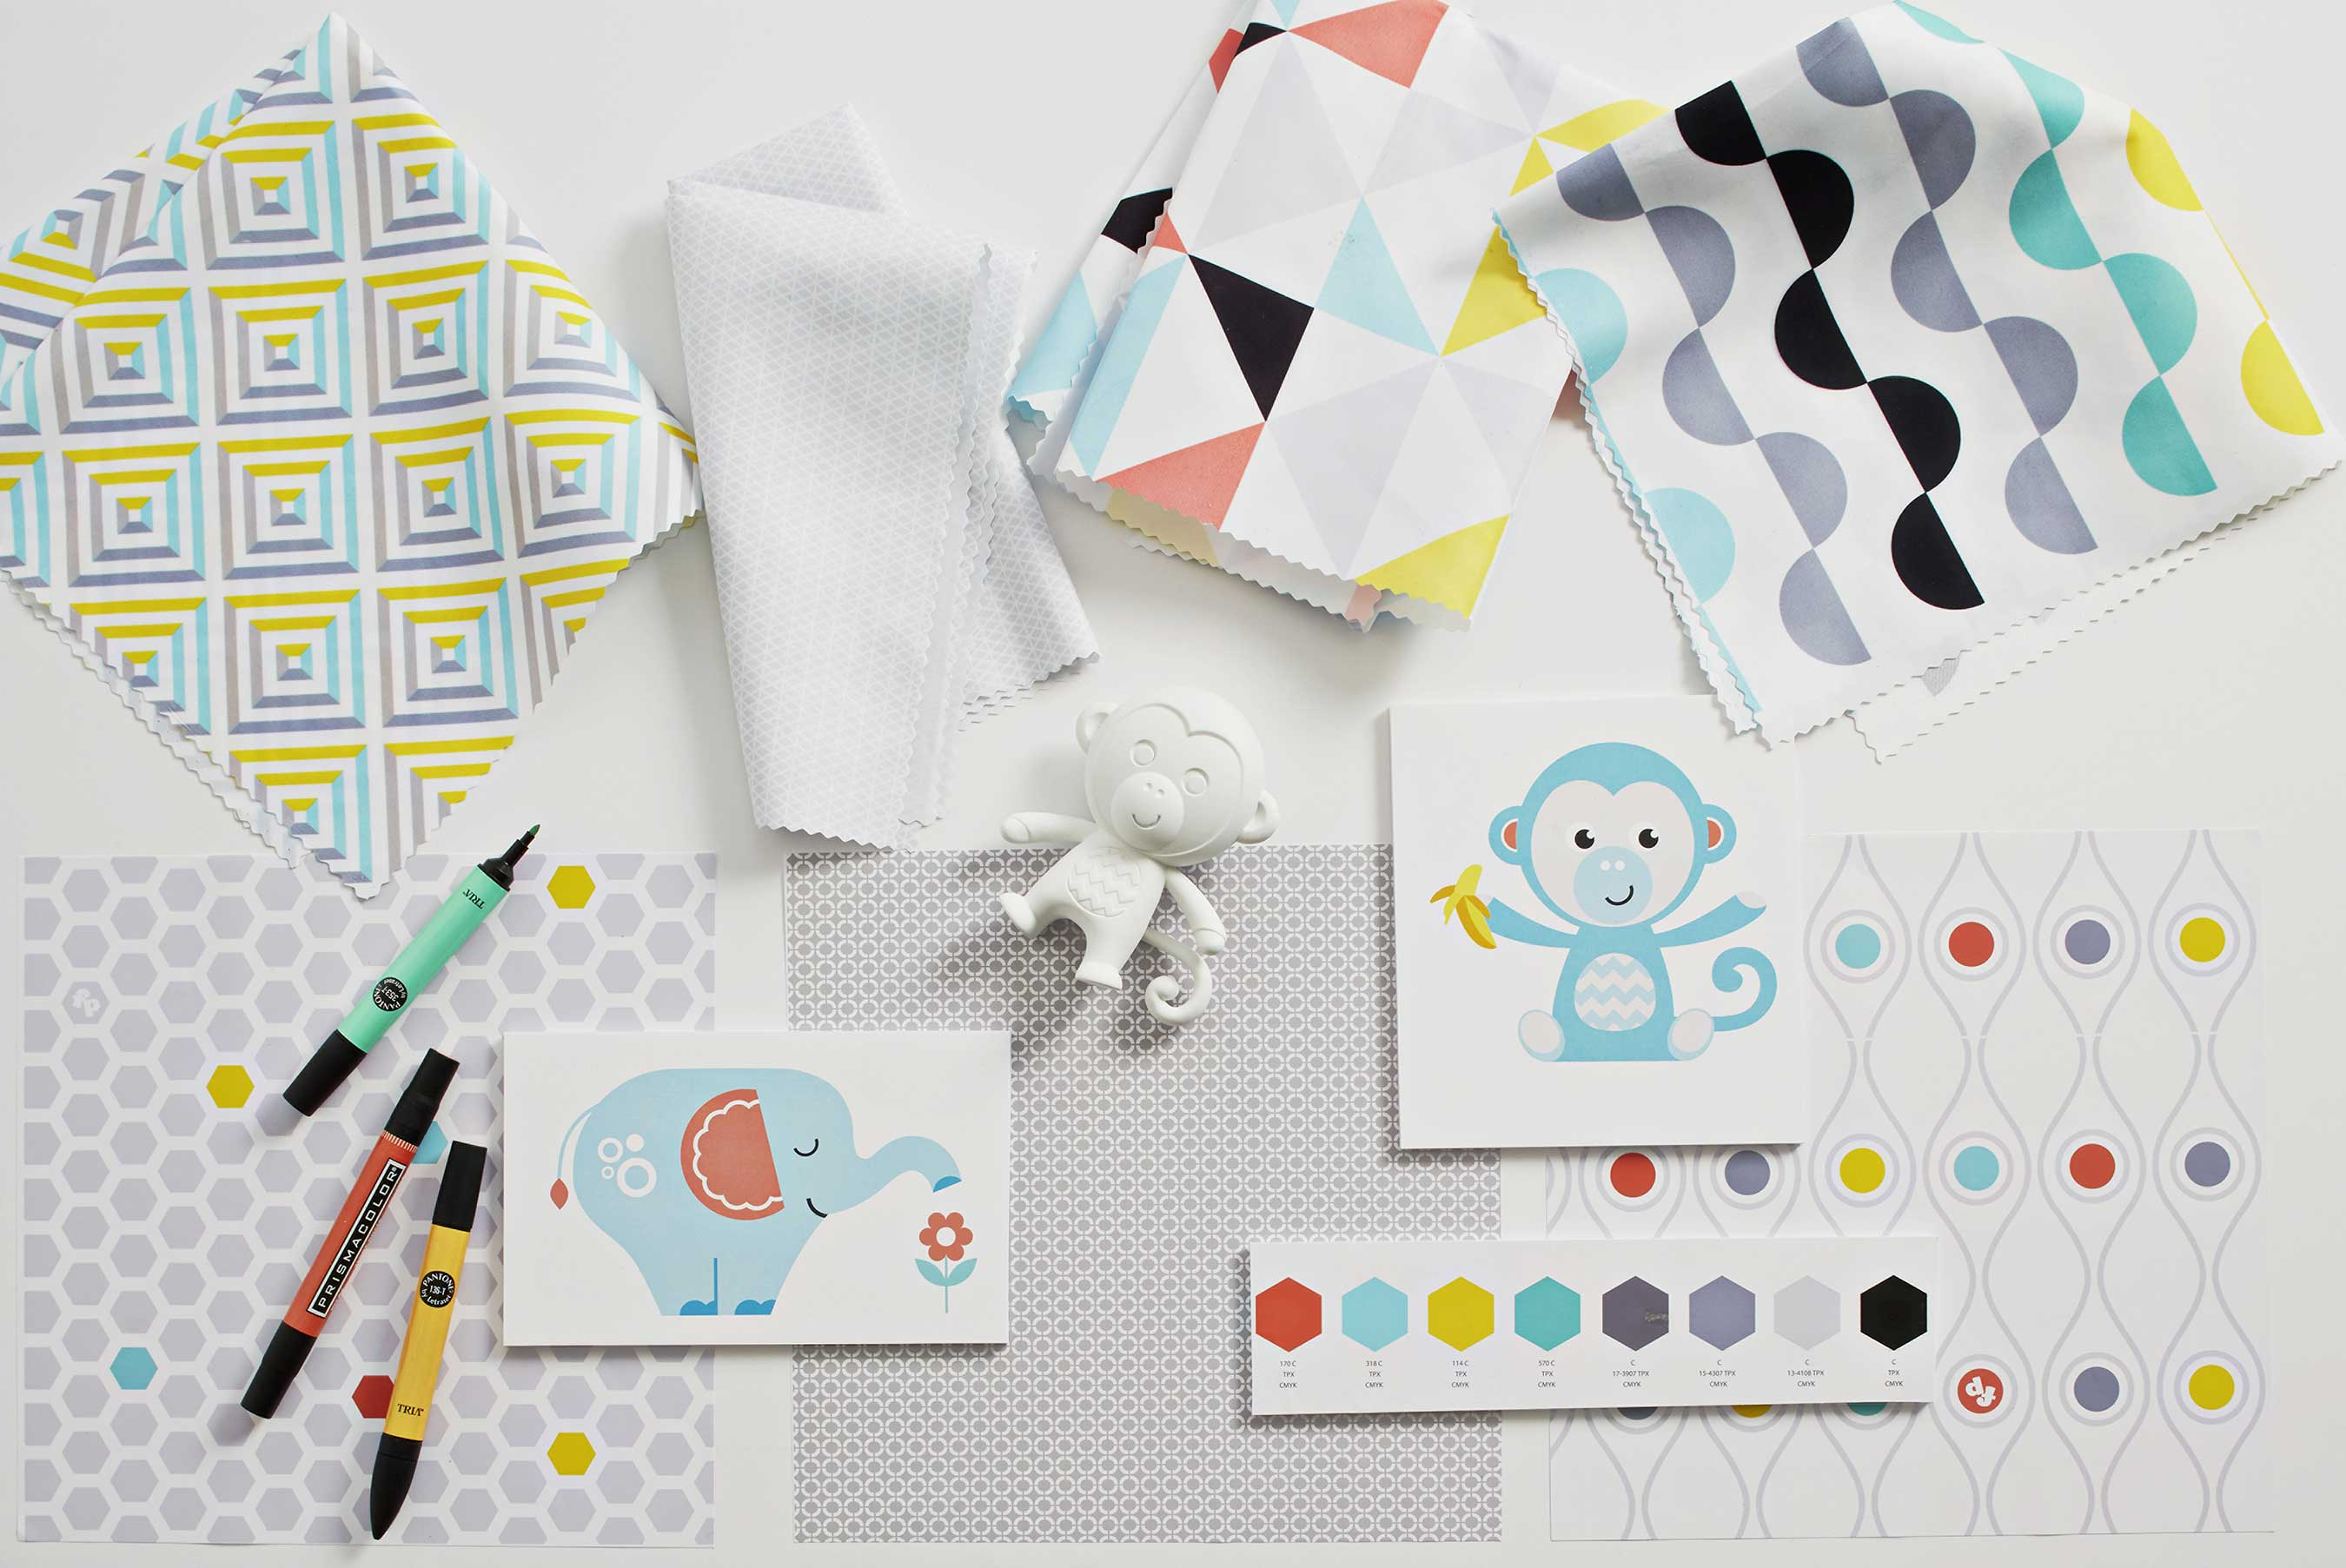 In his newly announced role as Creative Director of Fisher-Price, Jonathan Adler will consult on style direction for the brand and create modern prints and animal characters for future baby gear and toys.